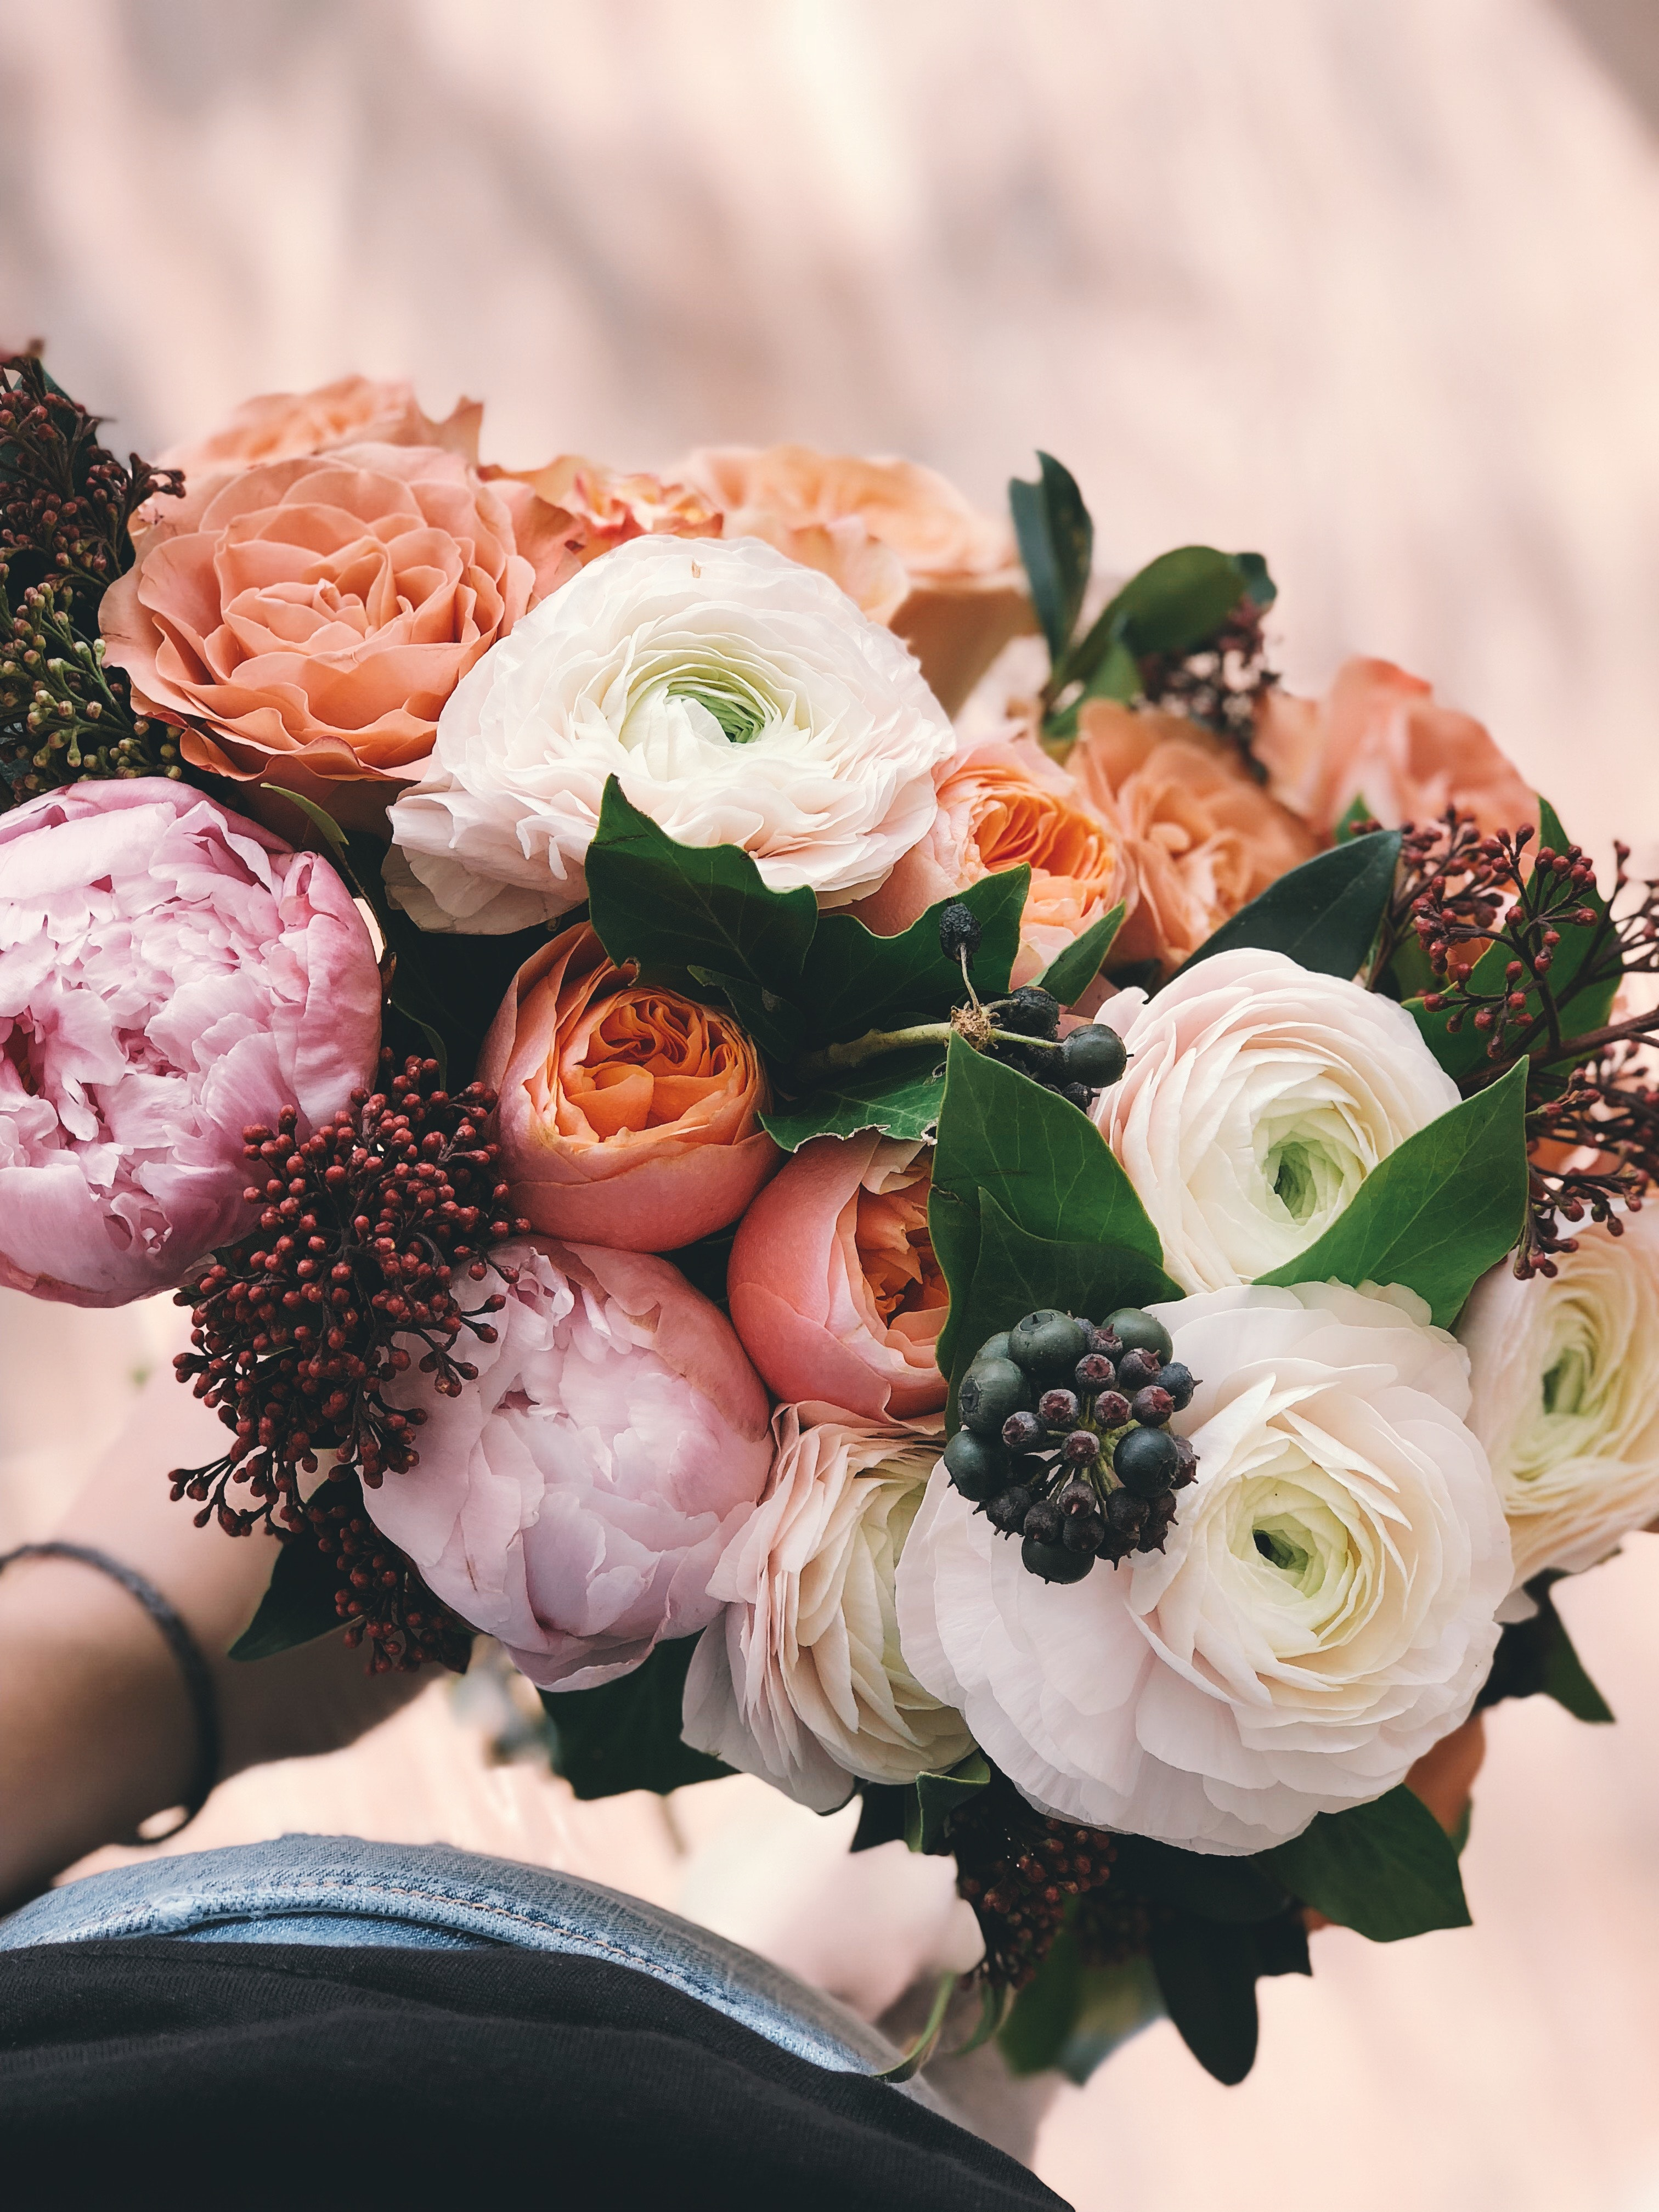 White Pink And Orange Rose Bouquet Free Stock Photo